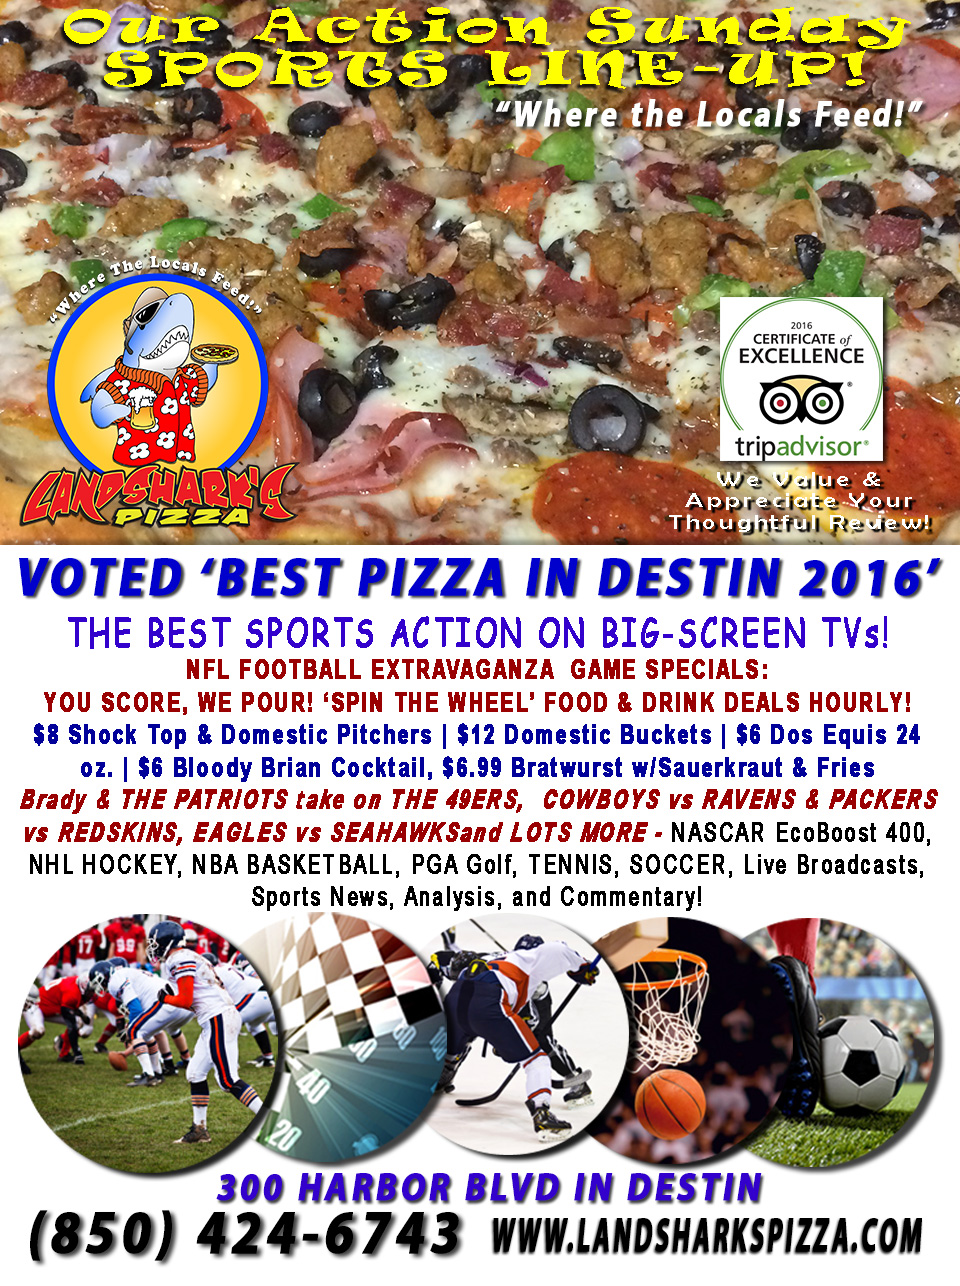 destin-fl-sports-bar-nfl-football-sunday-landsharks-pizza-hourly-specials-11-20-16a